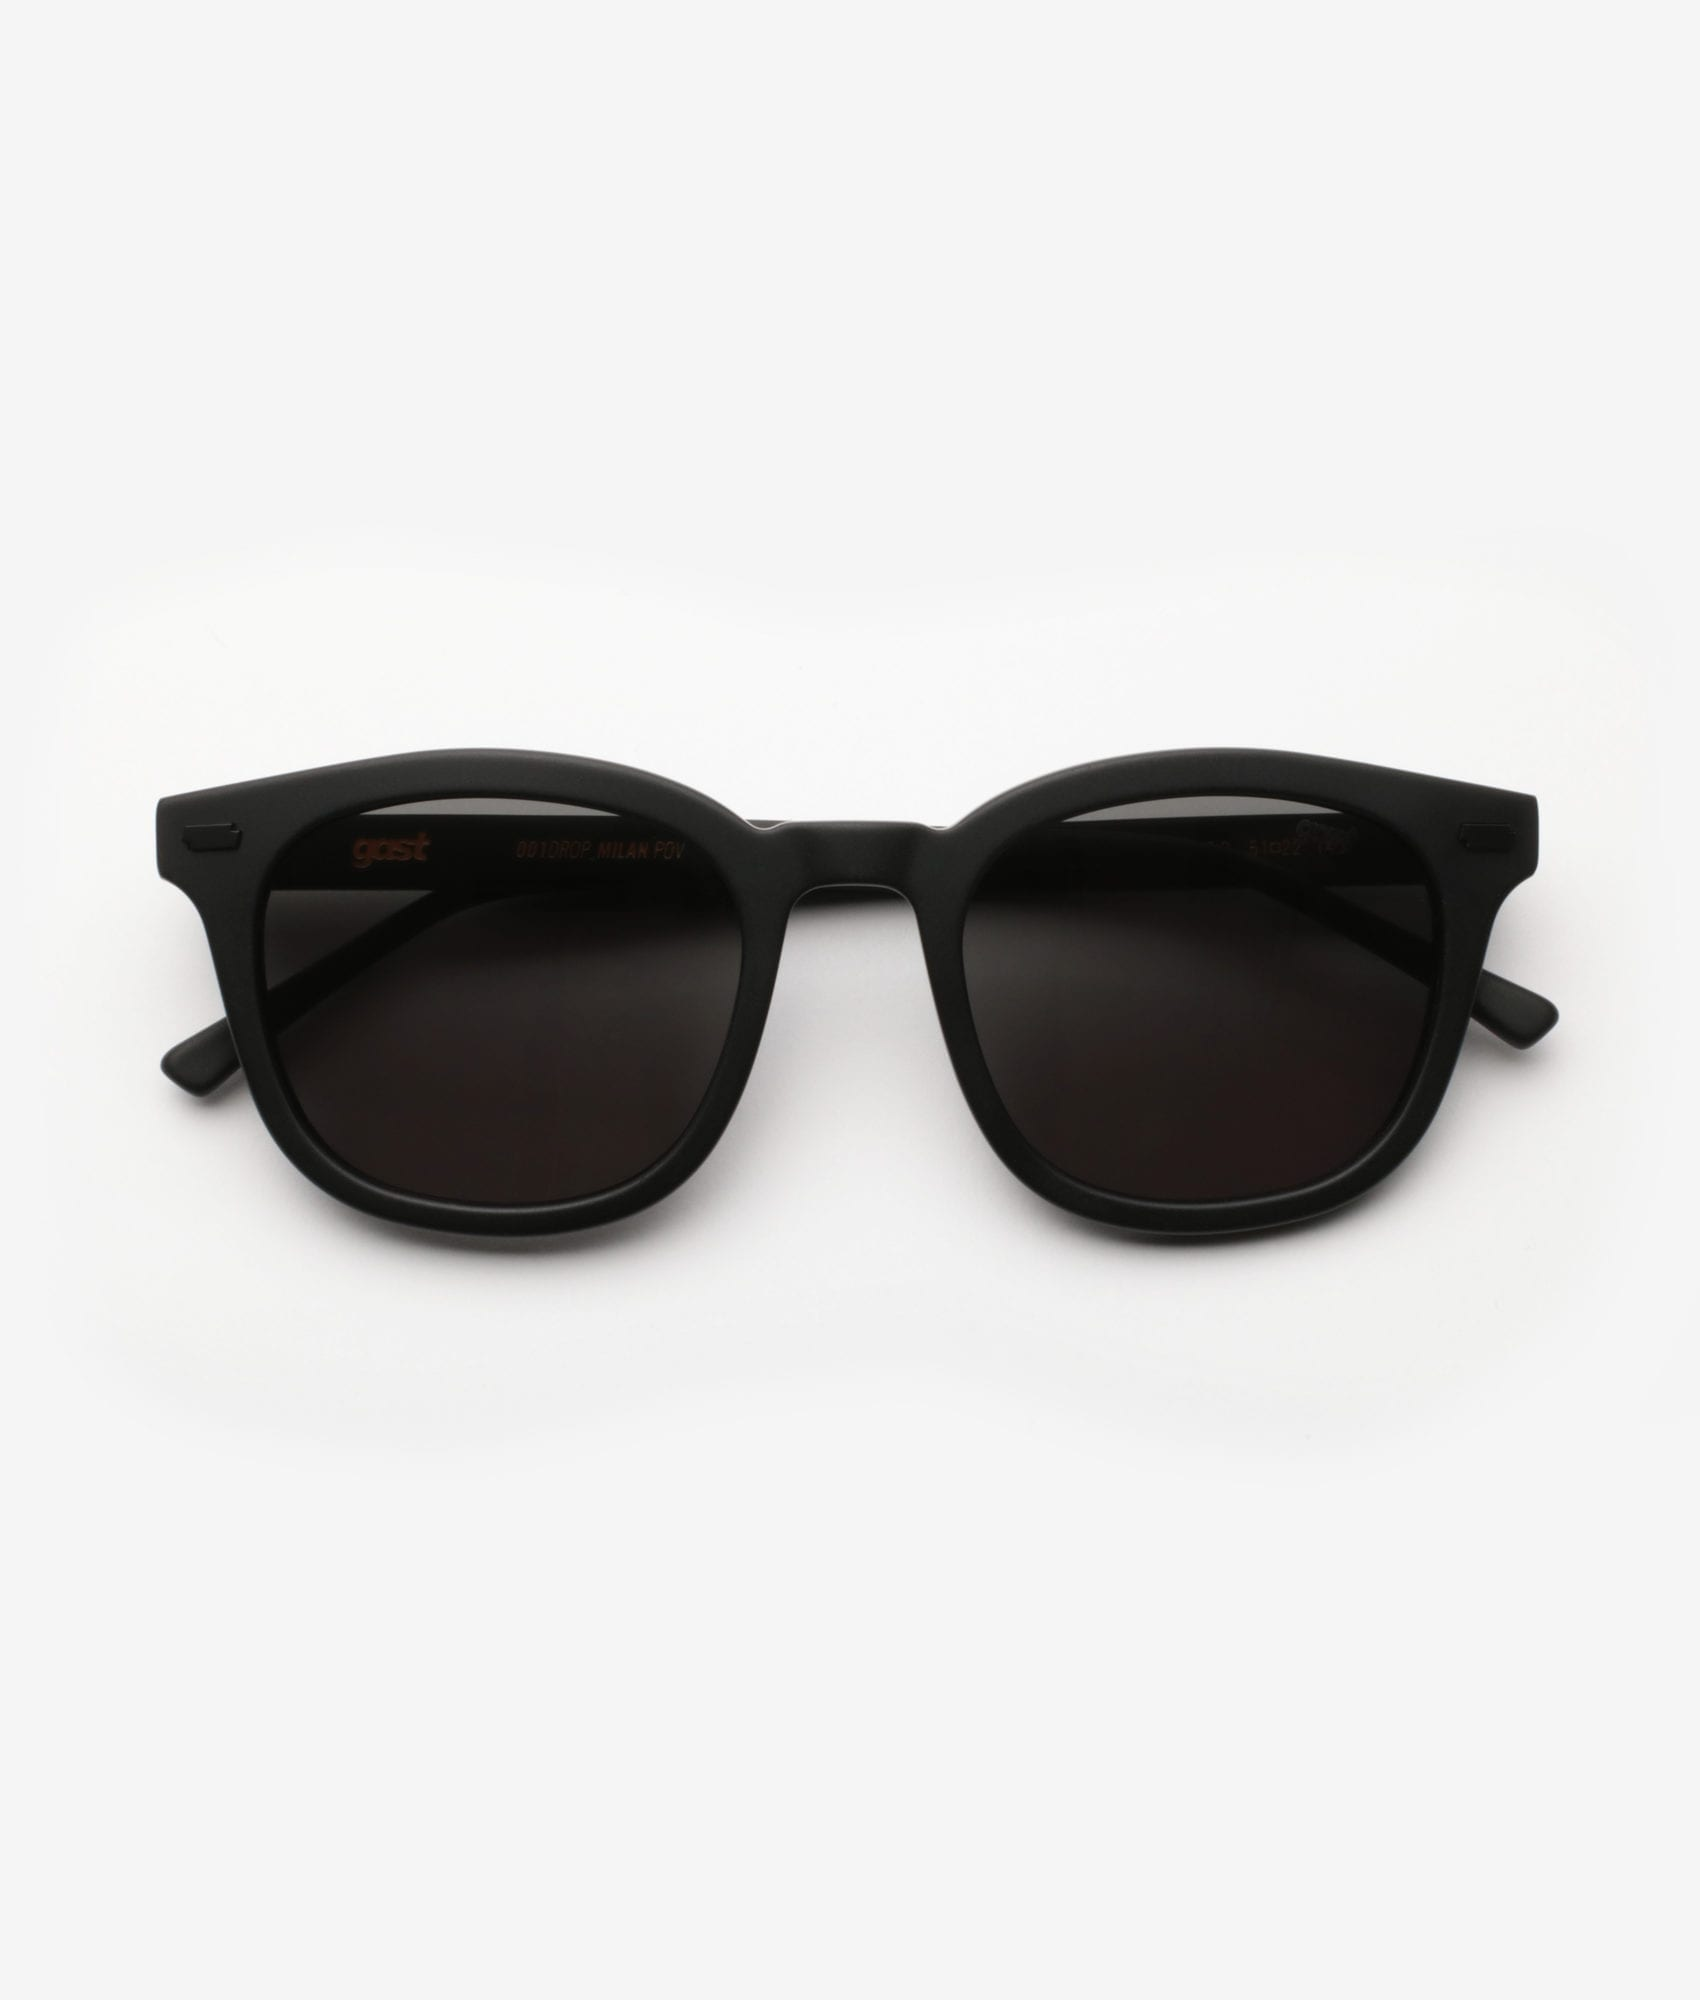 VENTI 159 Black Gast Sunglasses